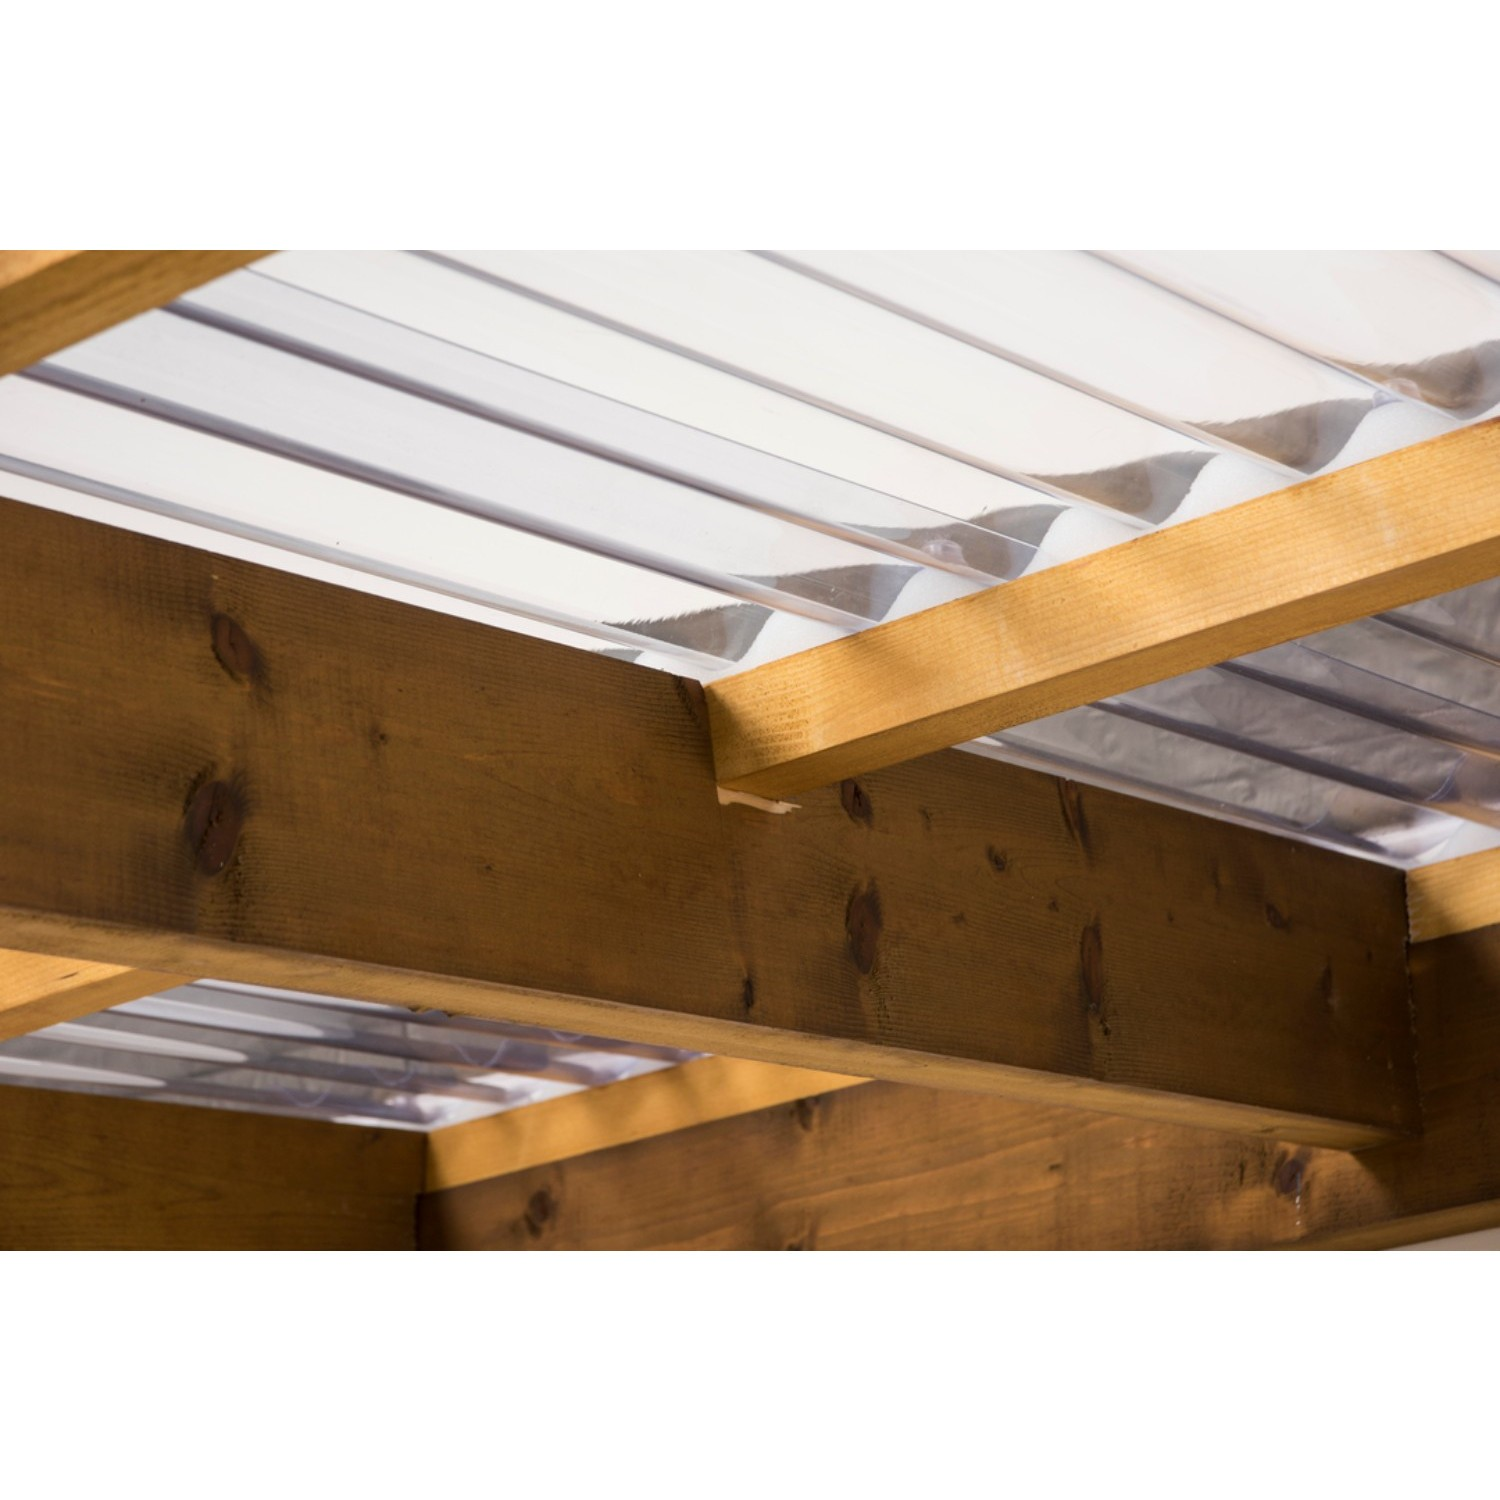 heavyweight *Clear* Pvc Corrugated Sheet 3inch Profile 1.1mm thick